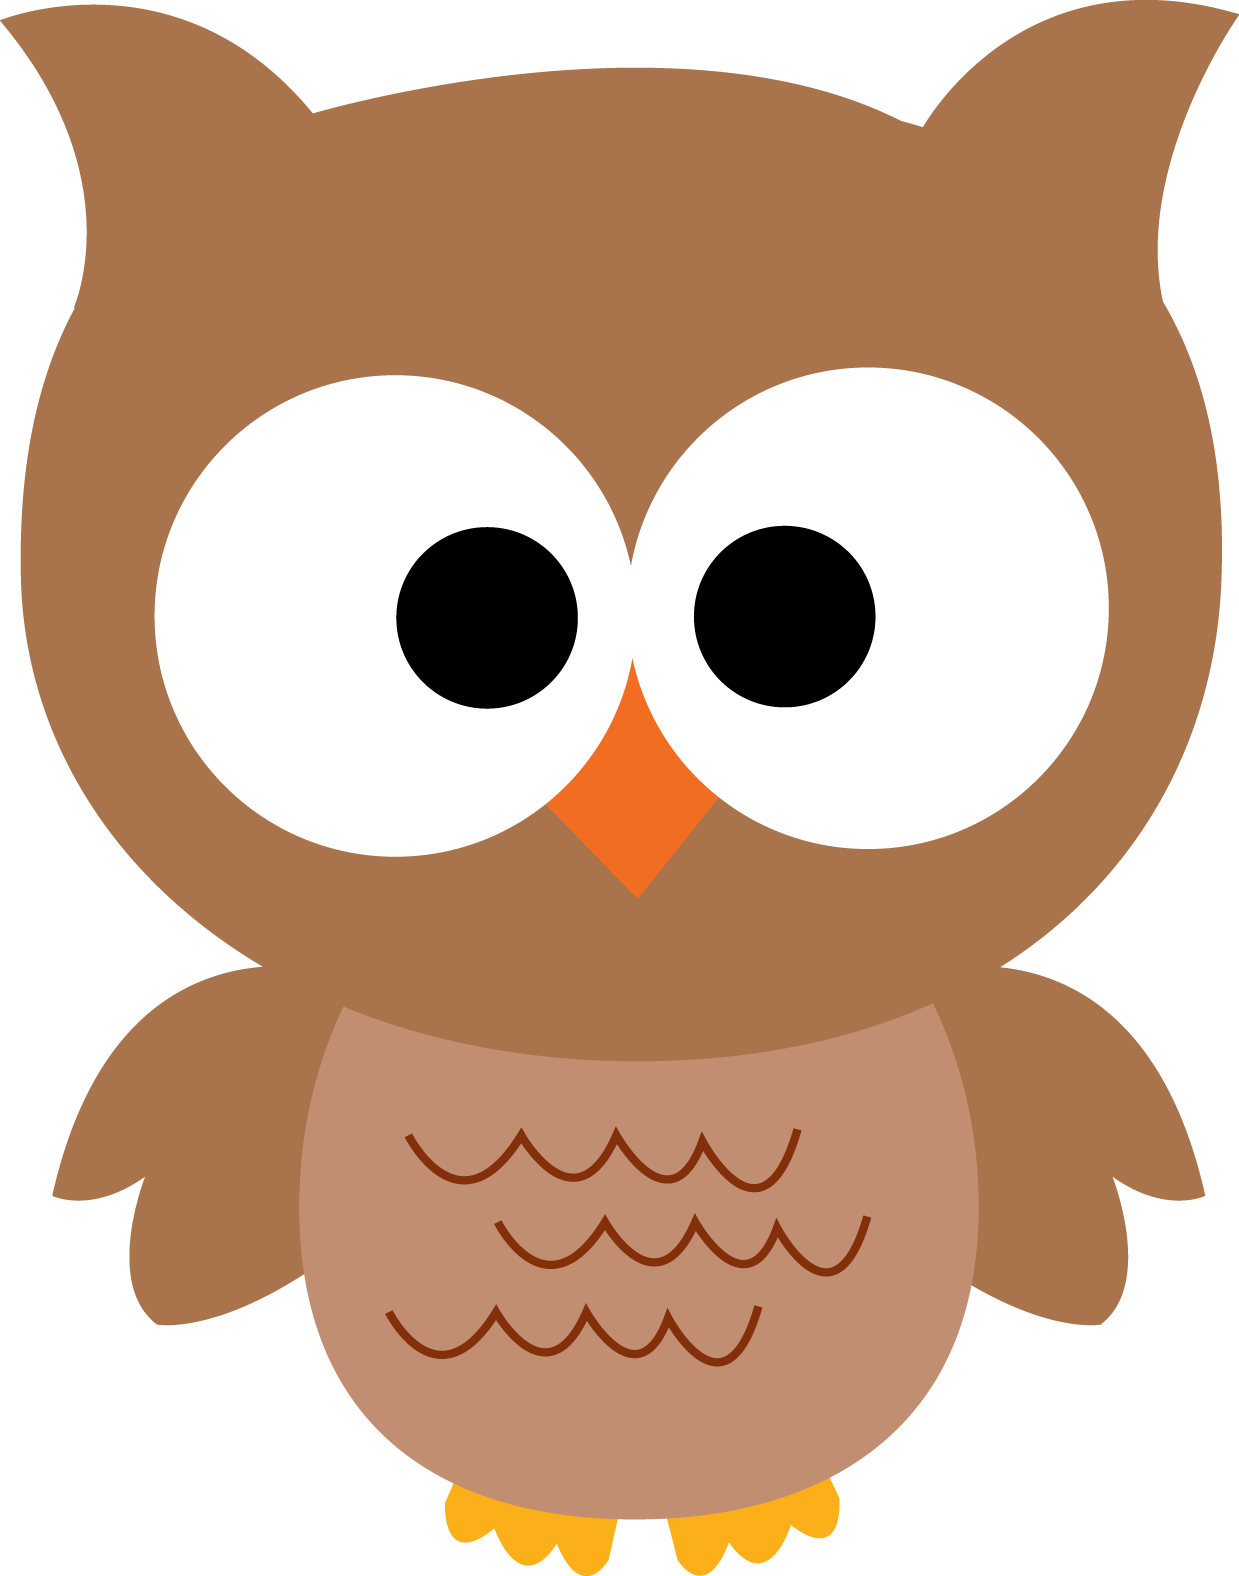 Clip art of owl free cartoon .-Clip art of owl free cartoon .-5